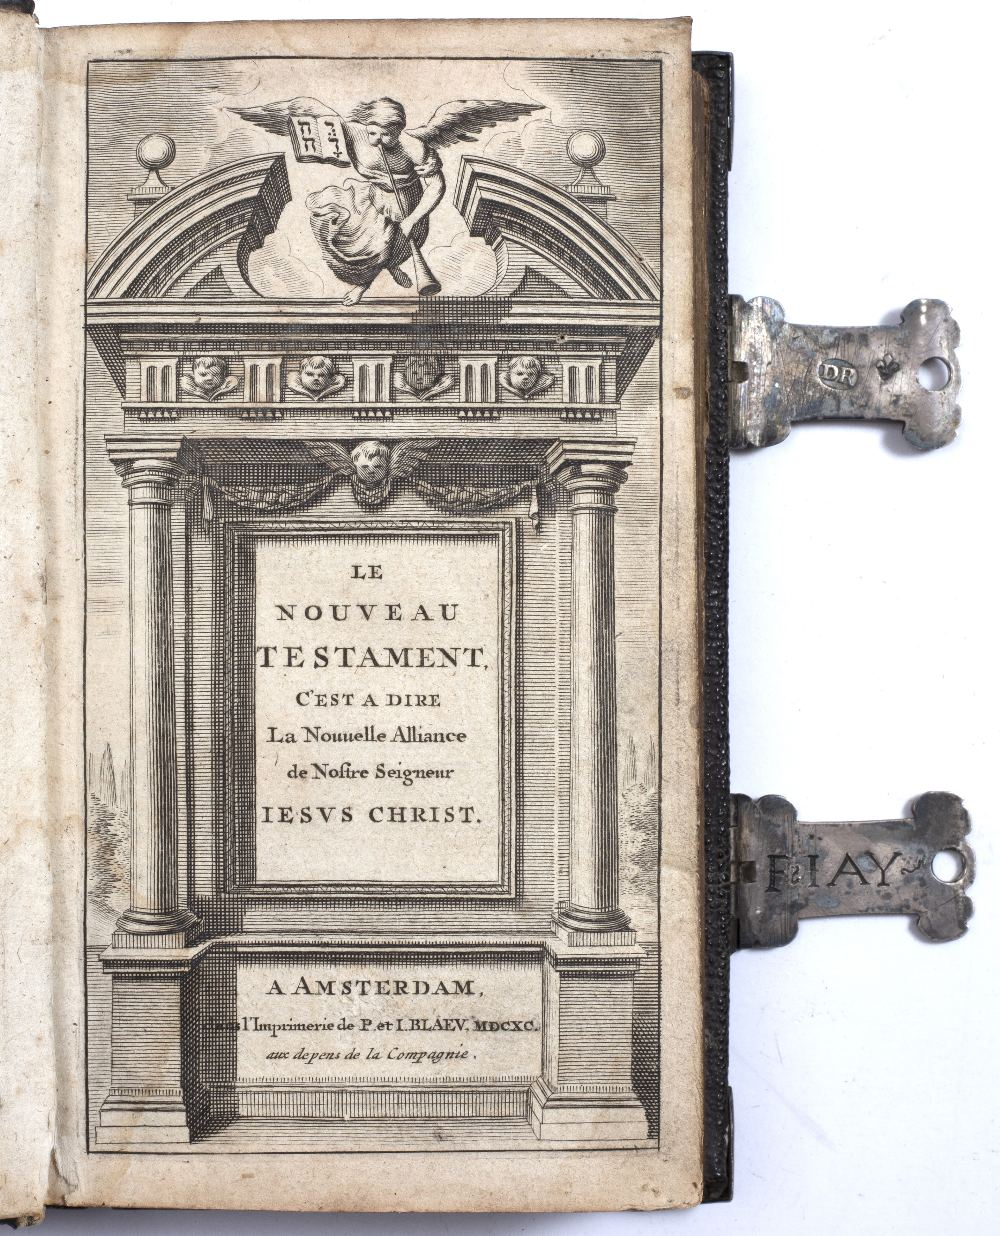 A 17TH CENTURY FRENCH MINIATURE NEW TESTAMENT and the Psalms of David translated into French by